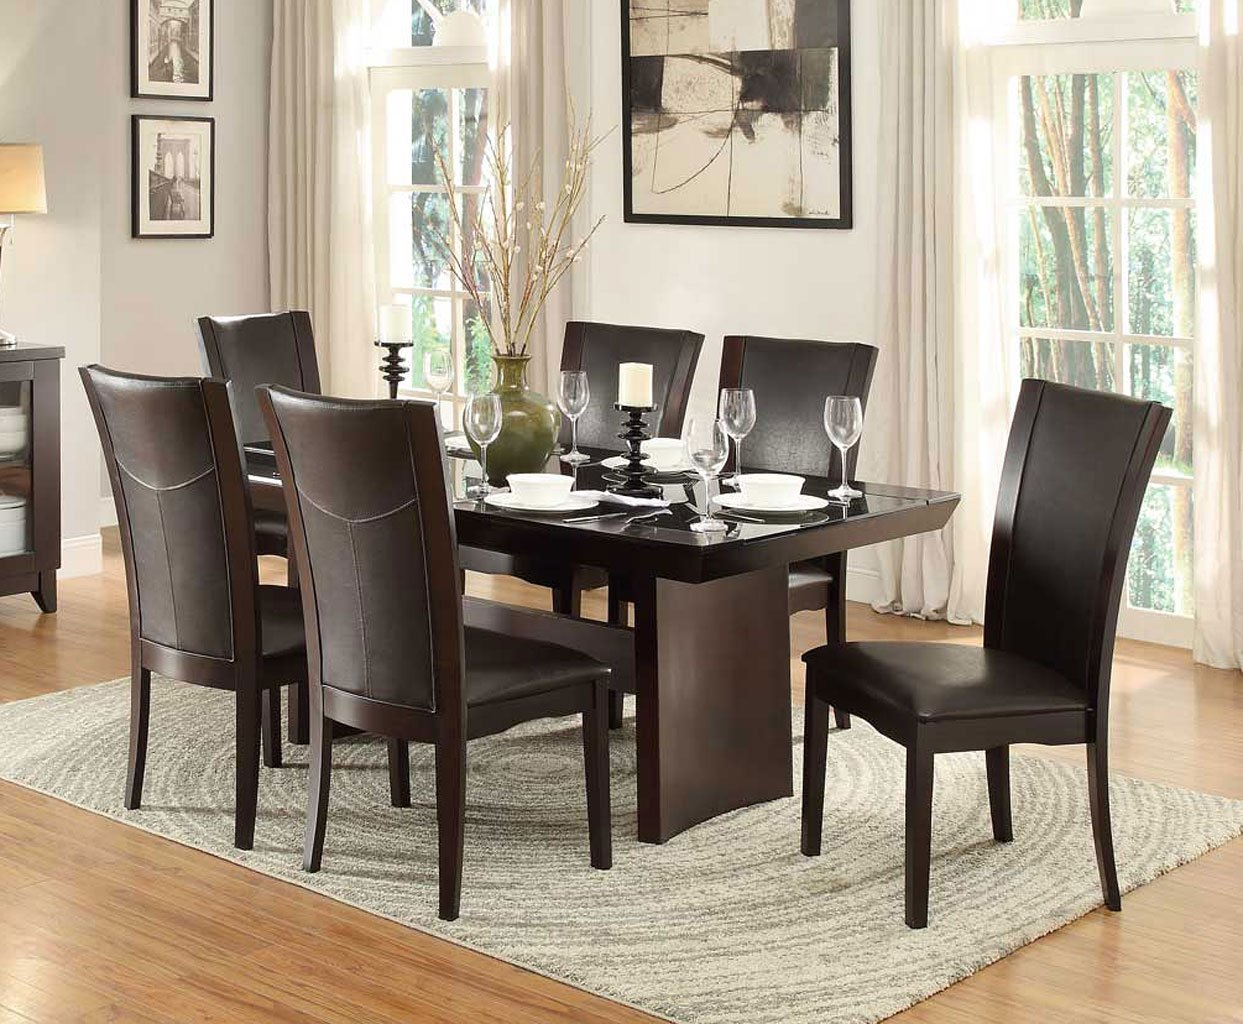 Lounche Dining Set Daisy Glass Insert Dining Room Set W/ Dark Brown Chairs